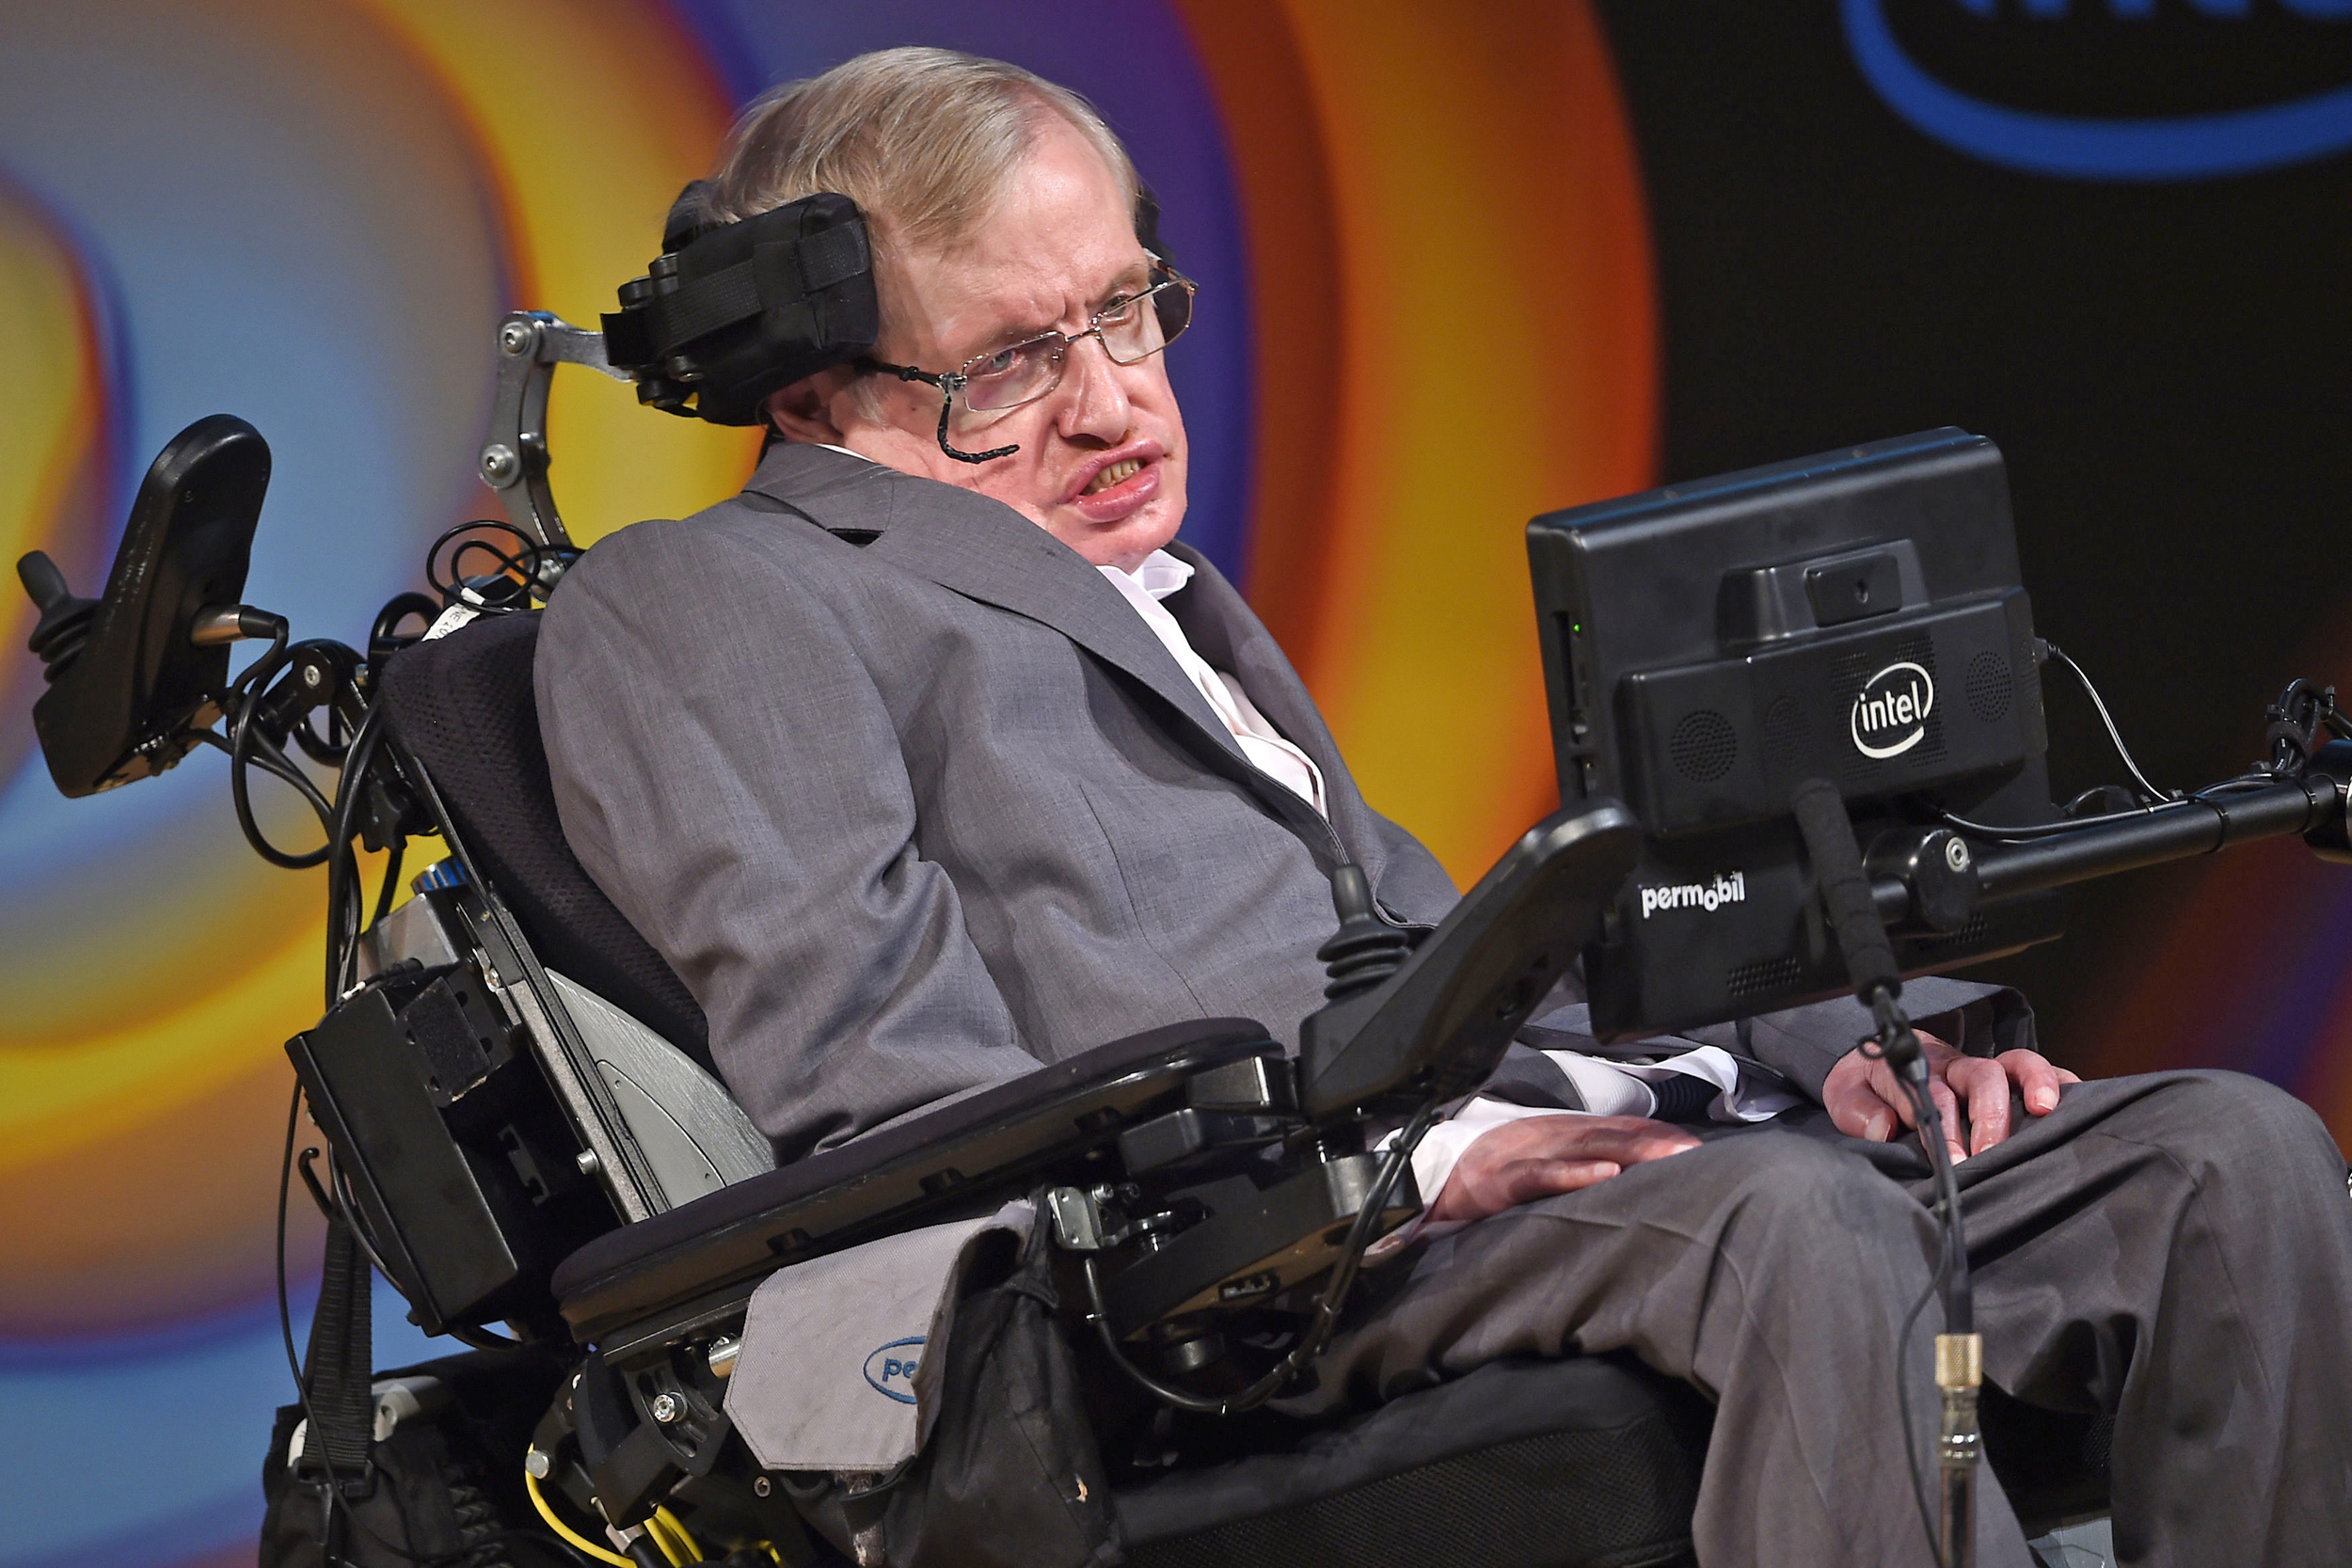 Stephen Hawking Image: Stephen Hawking Says Humans Must Leave Earth Within 600 Years